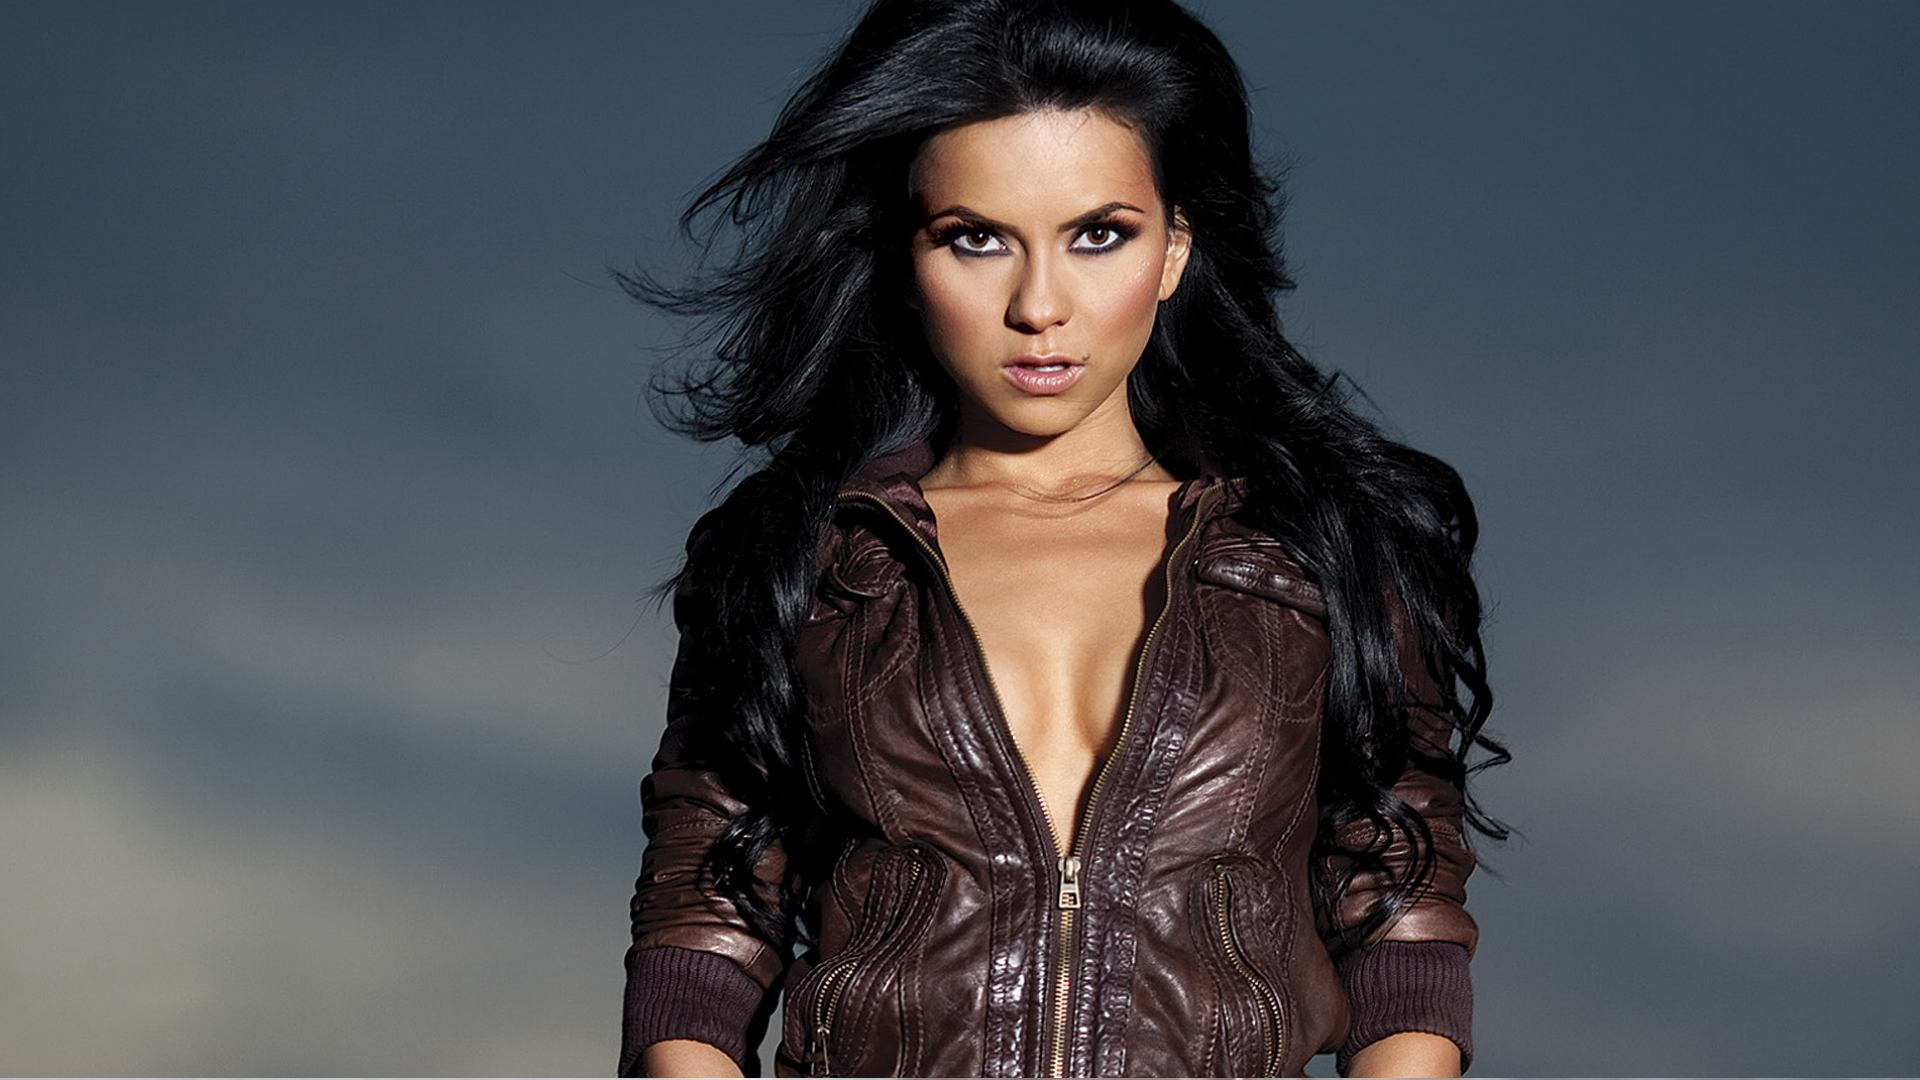 Inna hd wallpaper inna photos fanphobia celebrities - Inna wallpaper hd ...